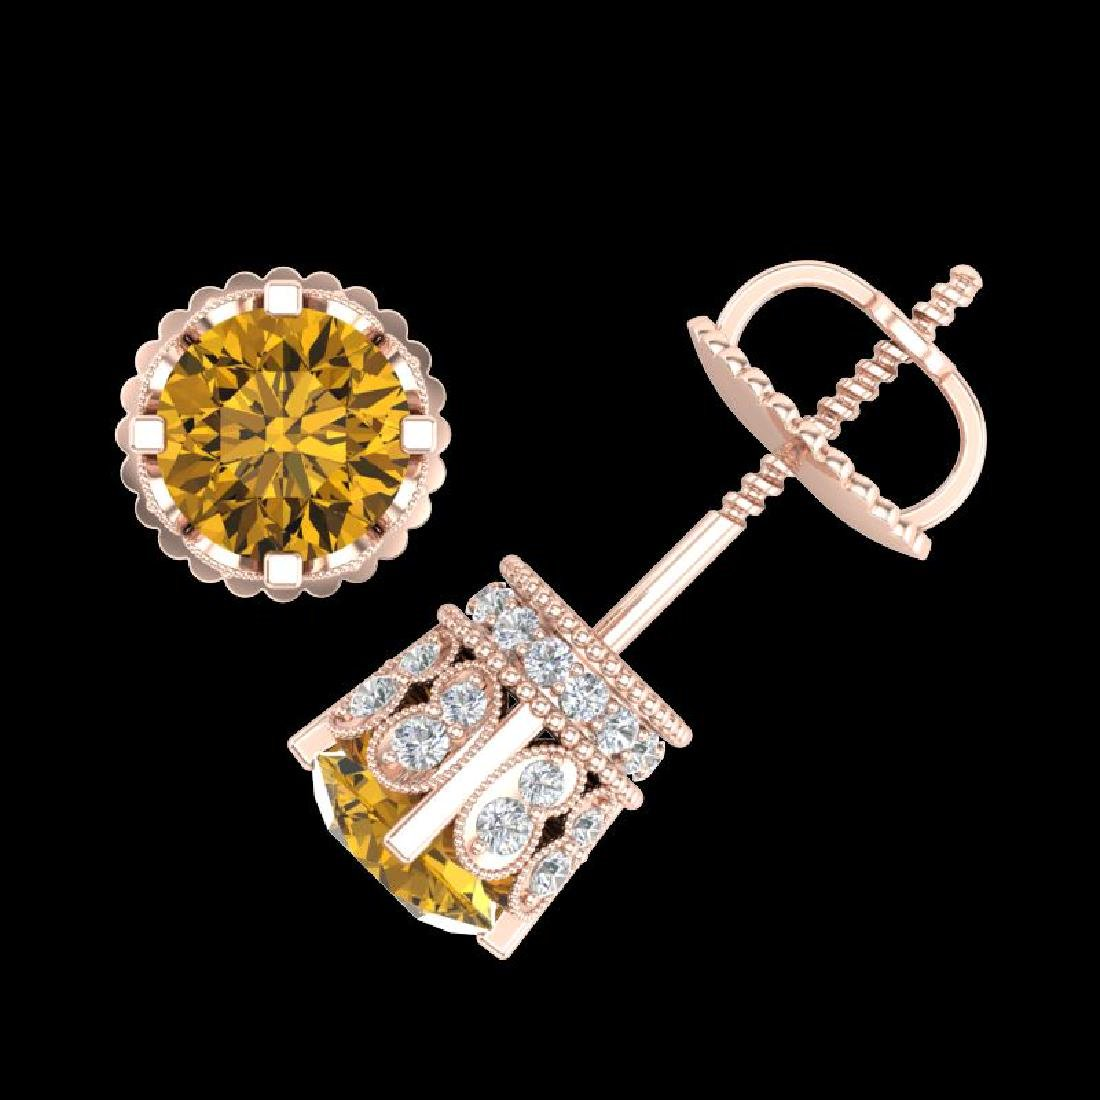 3 CTW Intense Fancy Yellow Diamond Art Deco Stud - 3